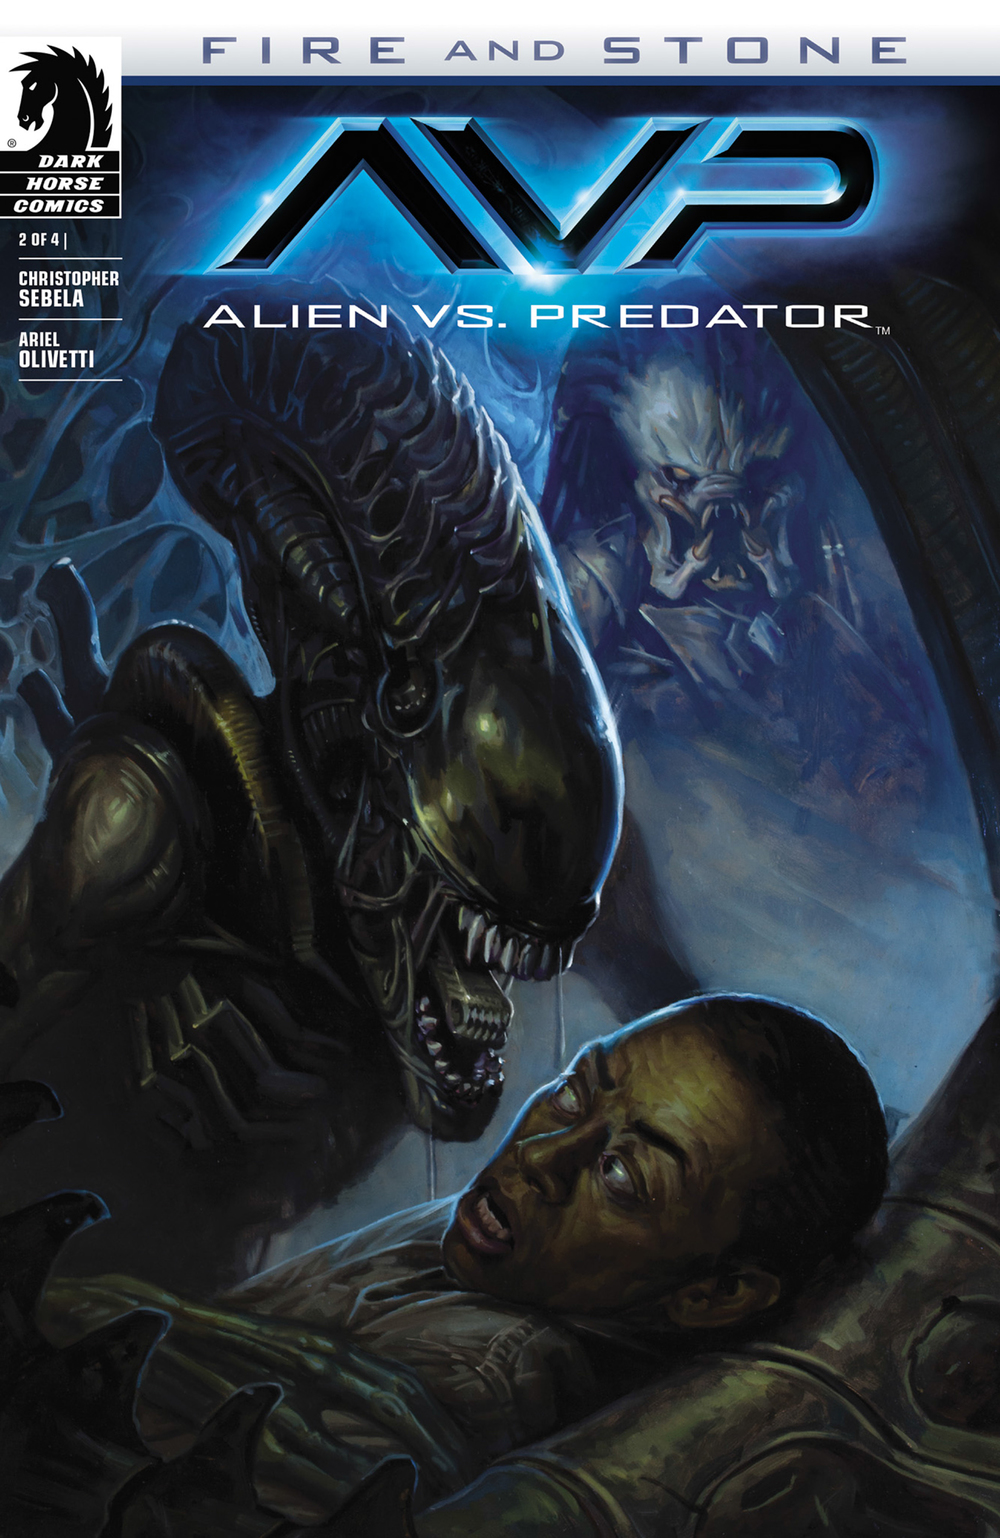 Alien Vs Predator: Fire and Stone #2